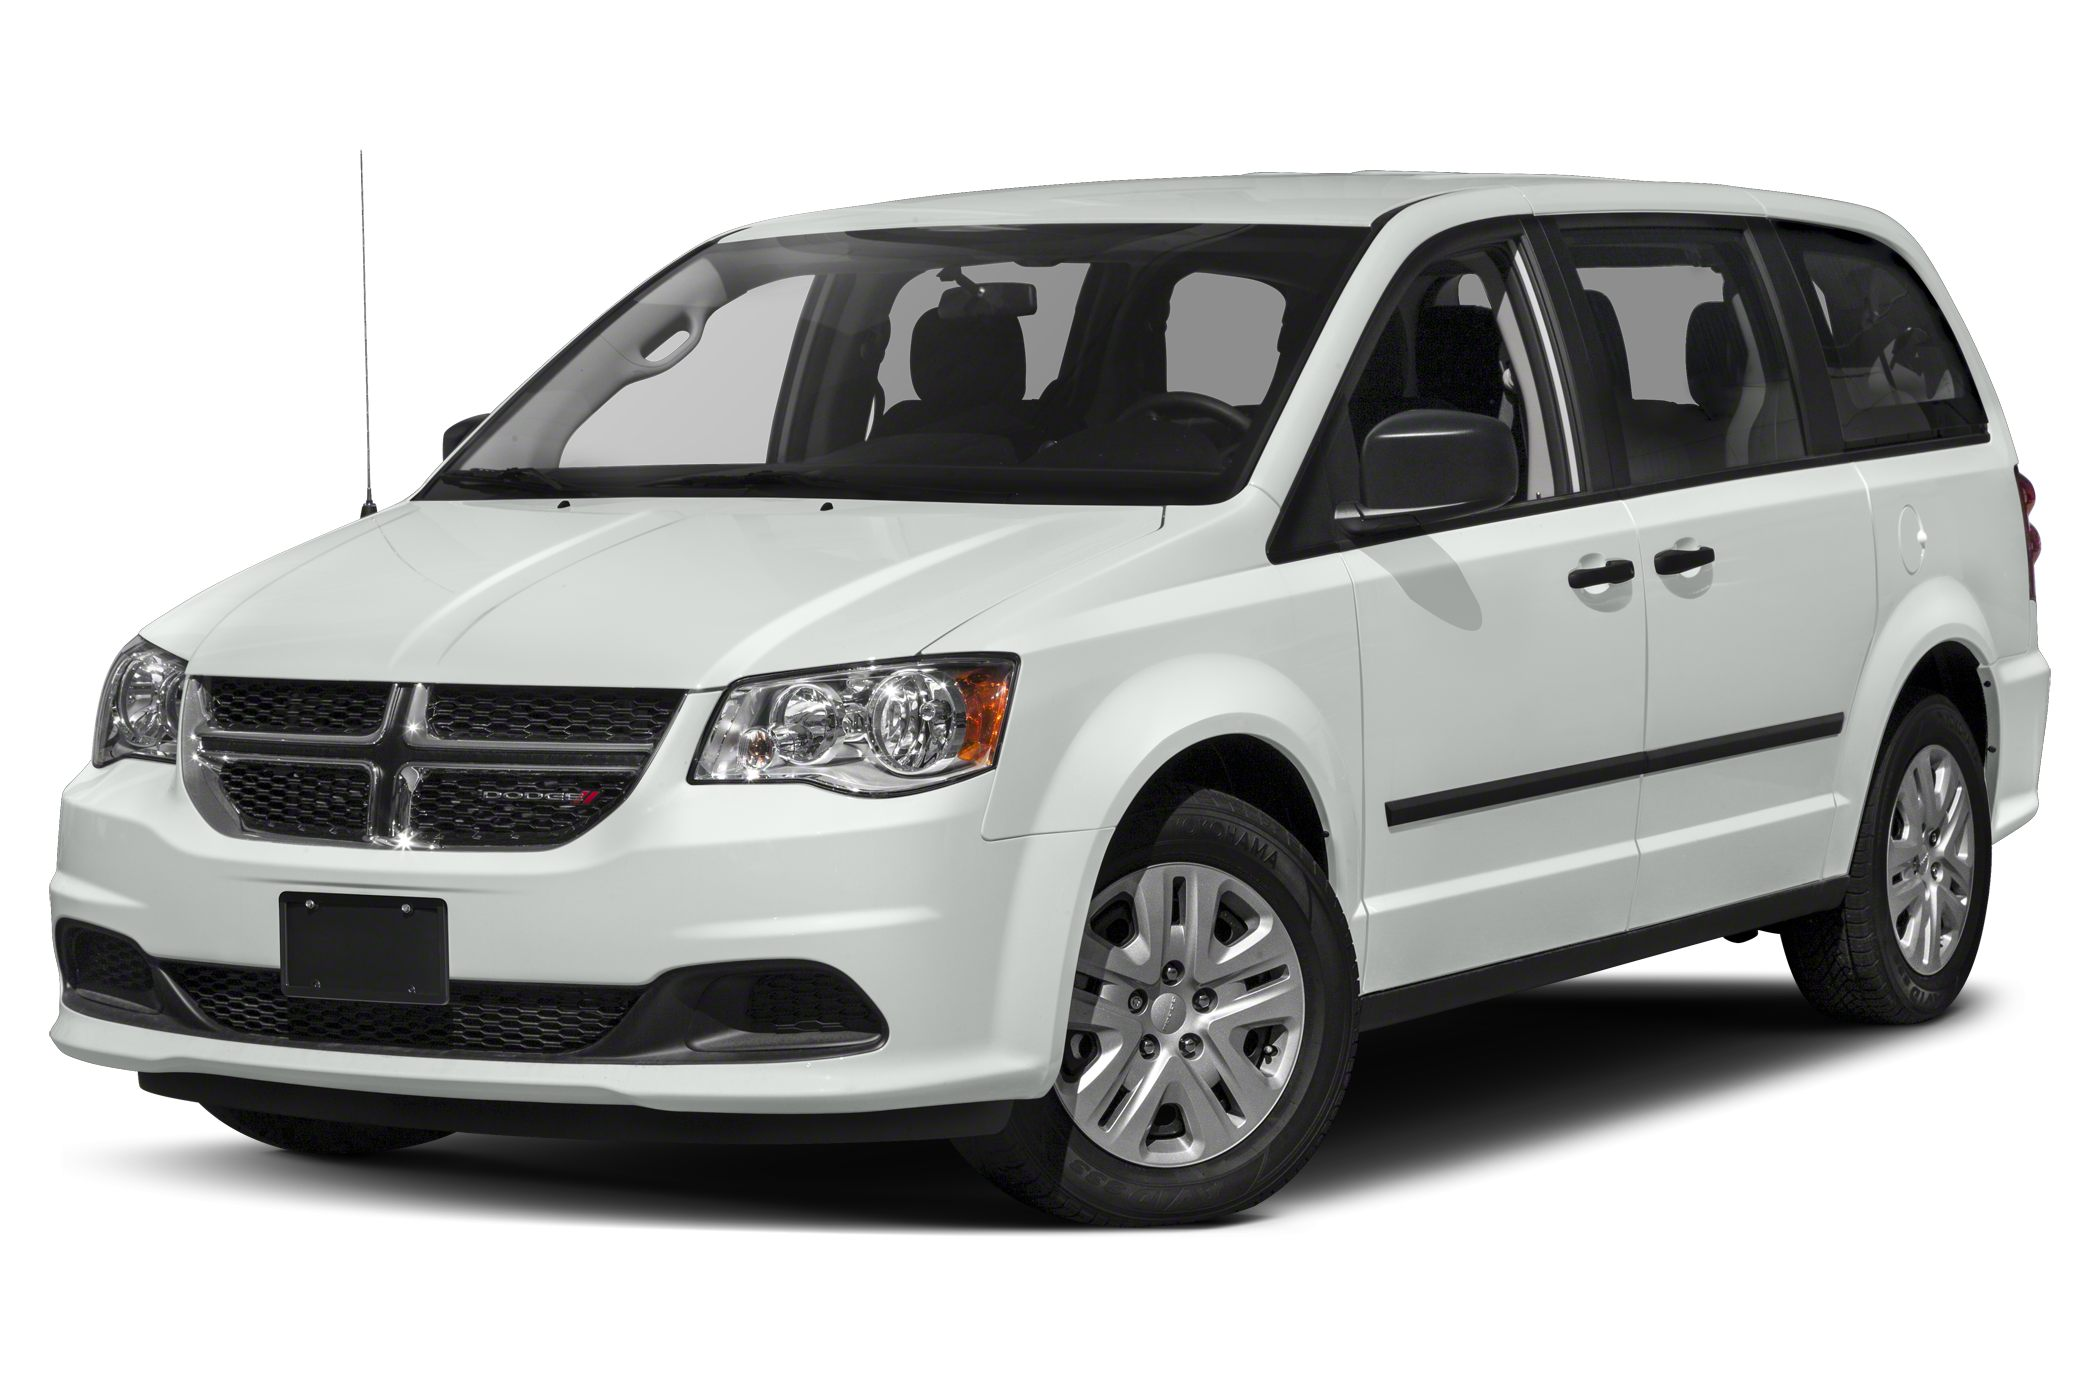 2019 Dodge Grand Caravan Sxt Front Wheel Drive Passenger Van Specs And Prices